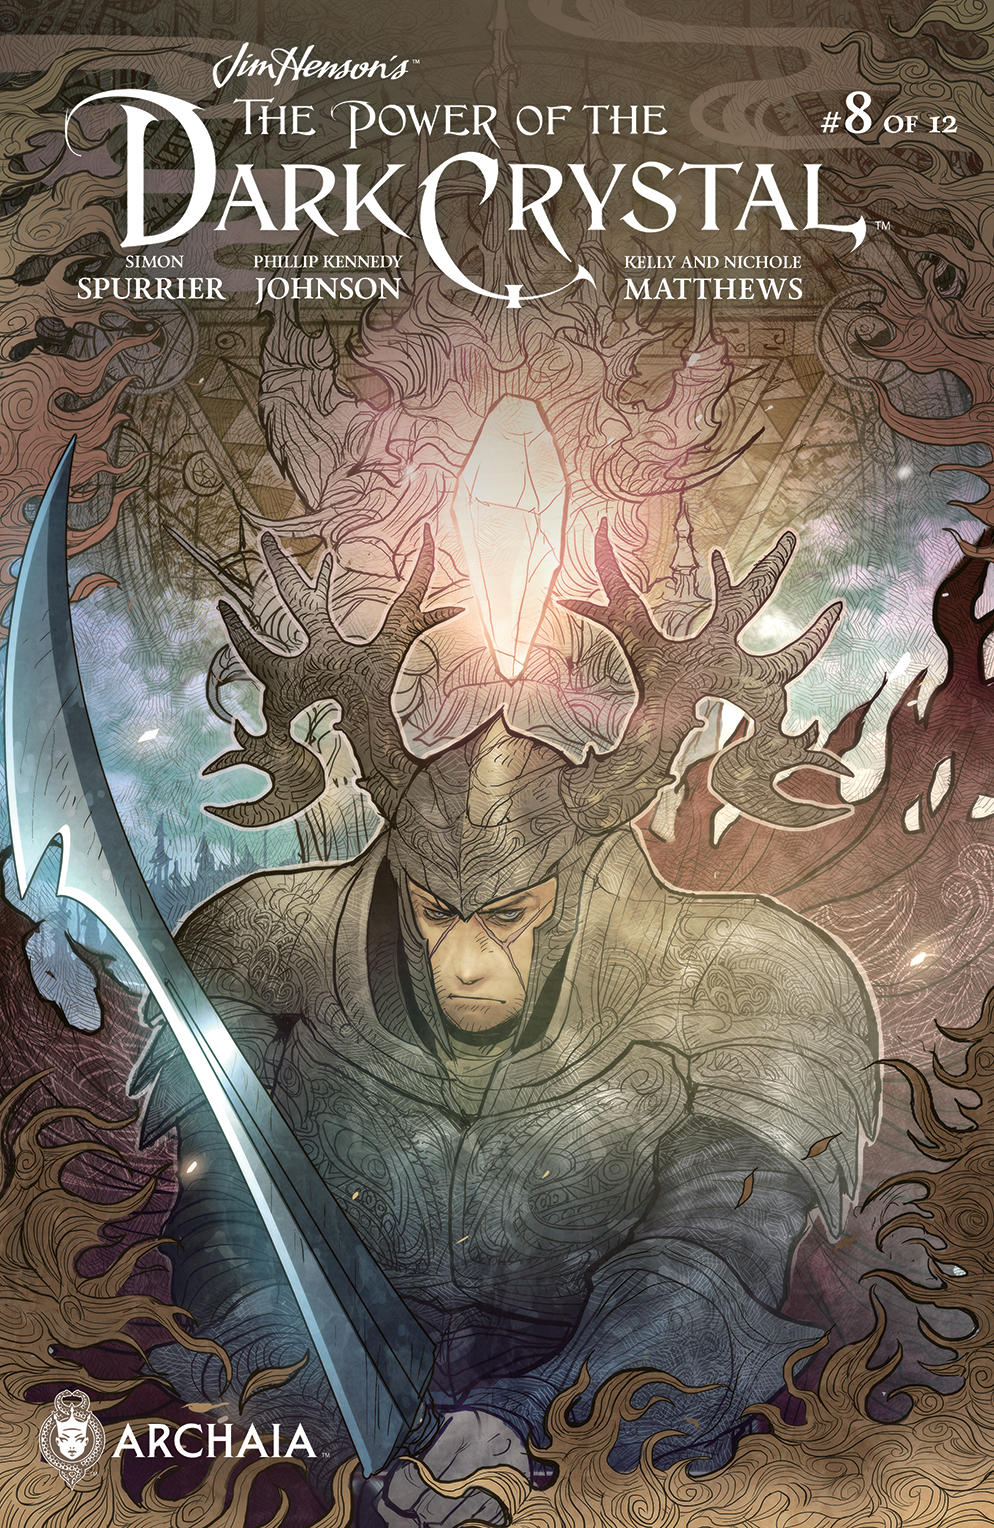 The Power of the Dark Crystal #8 Review